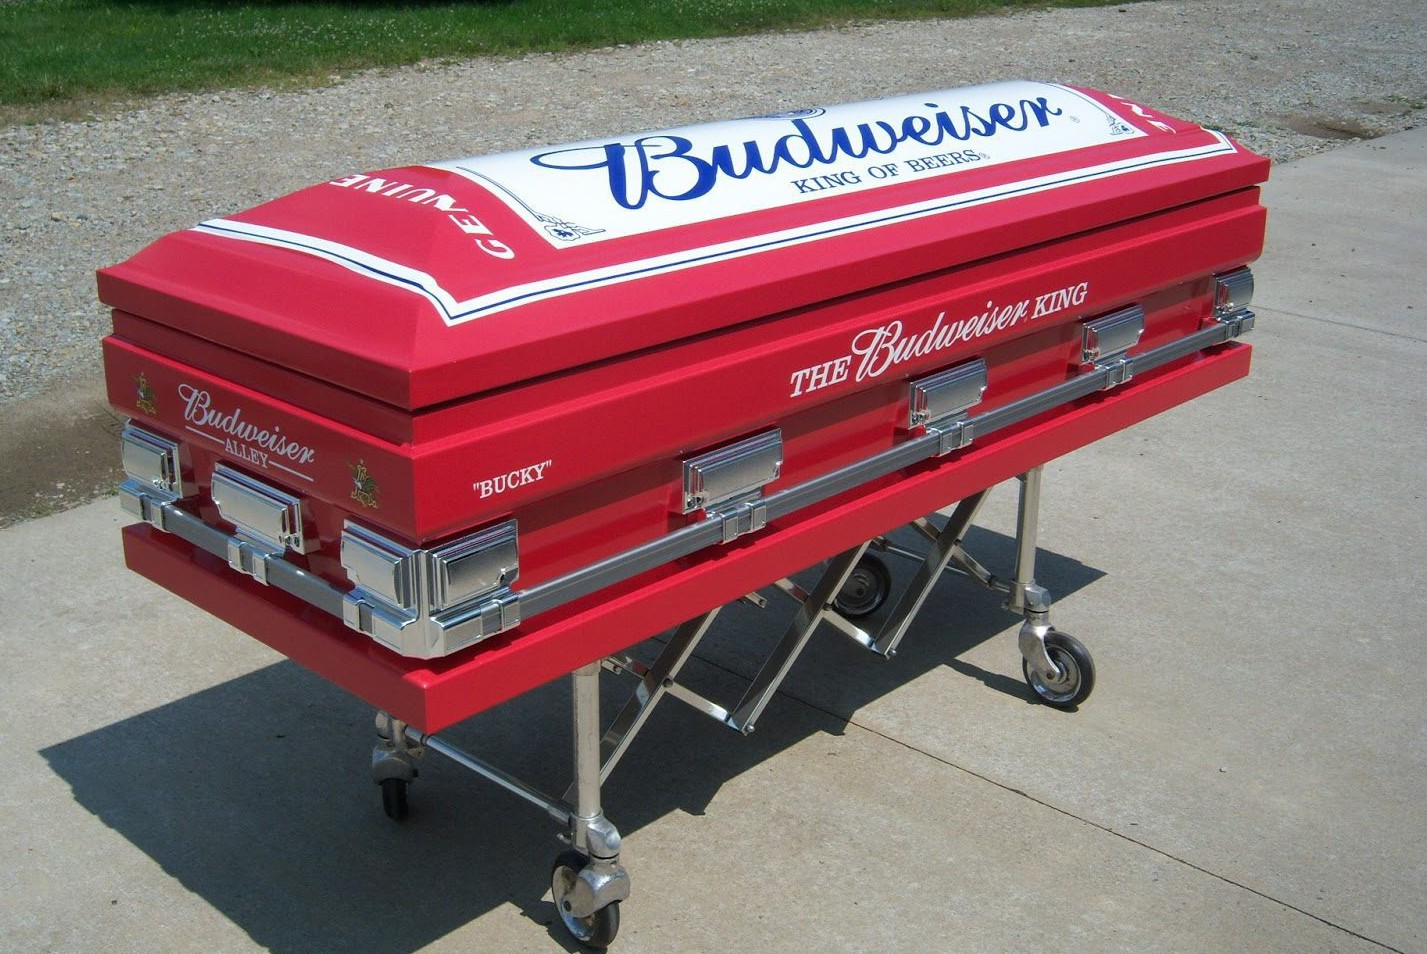 Budweiser-Coffin-e1501055391186